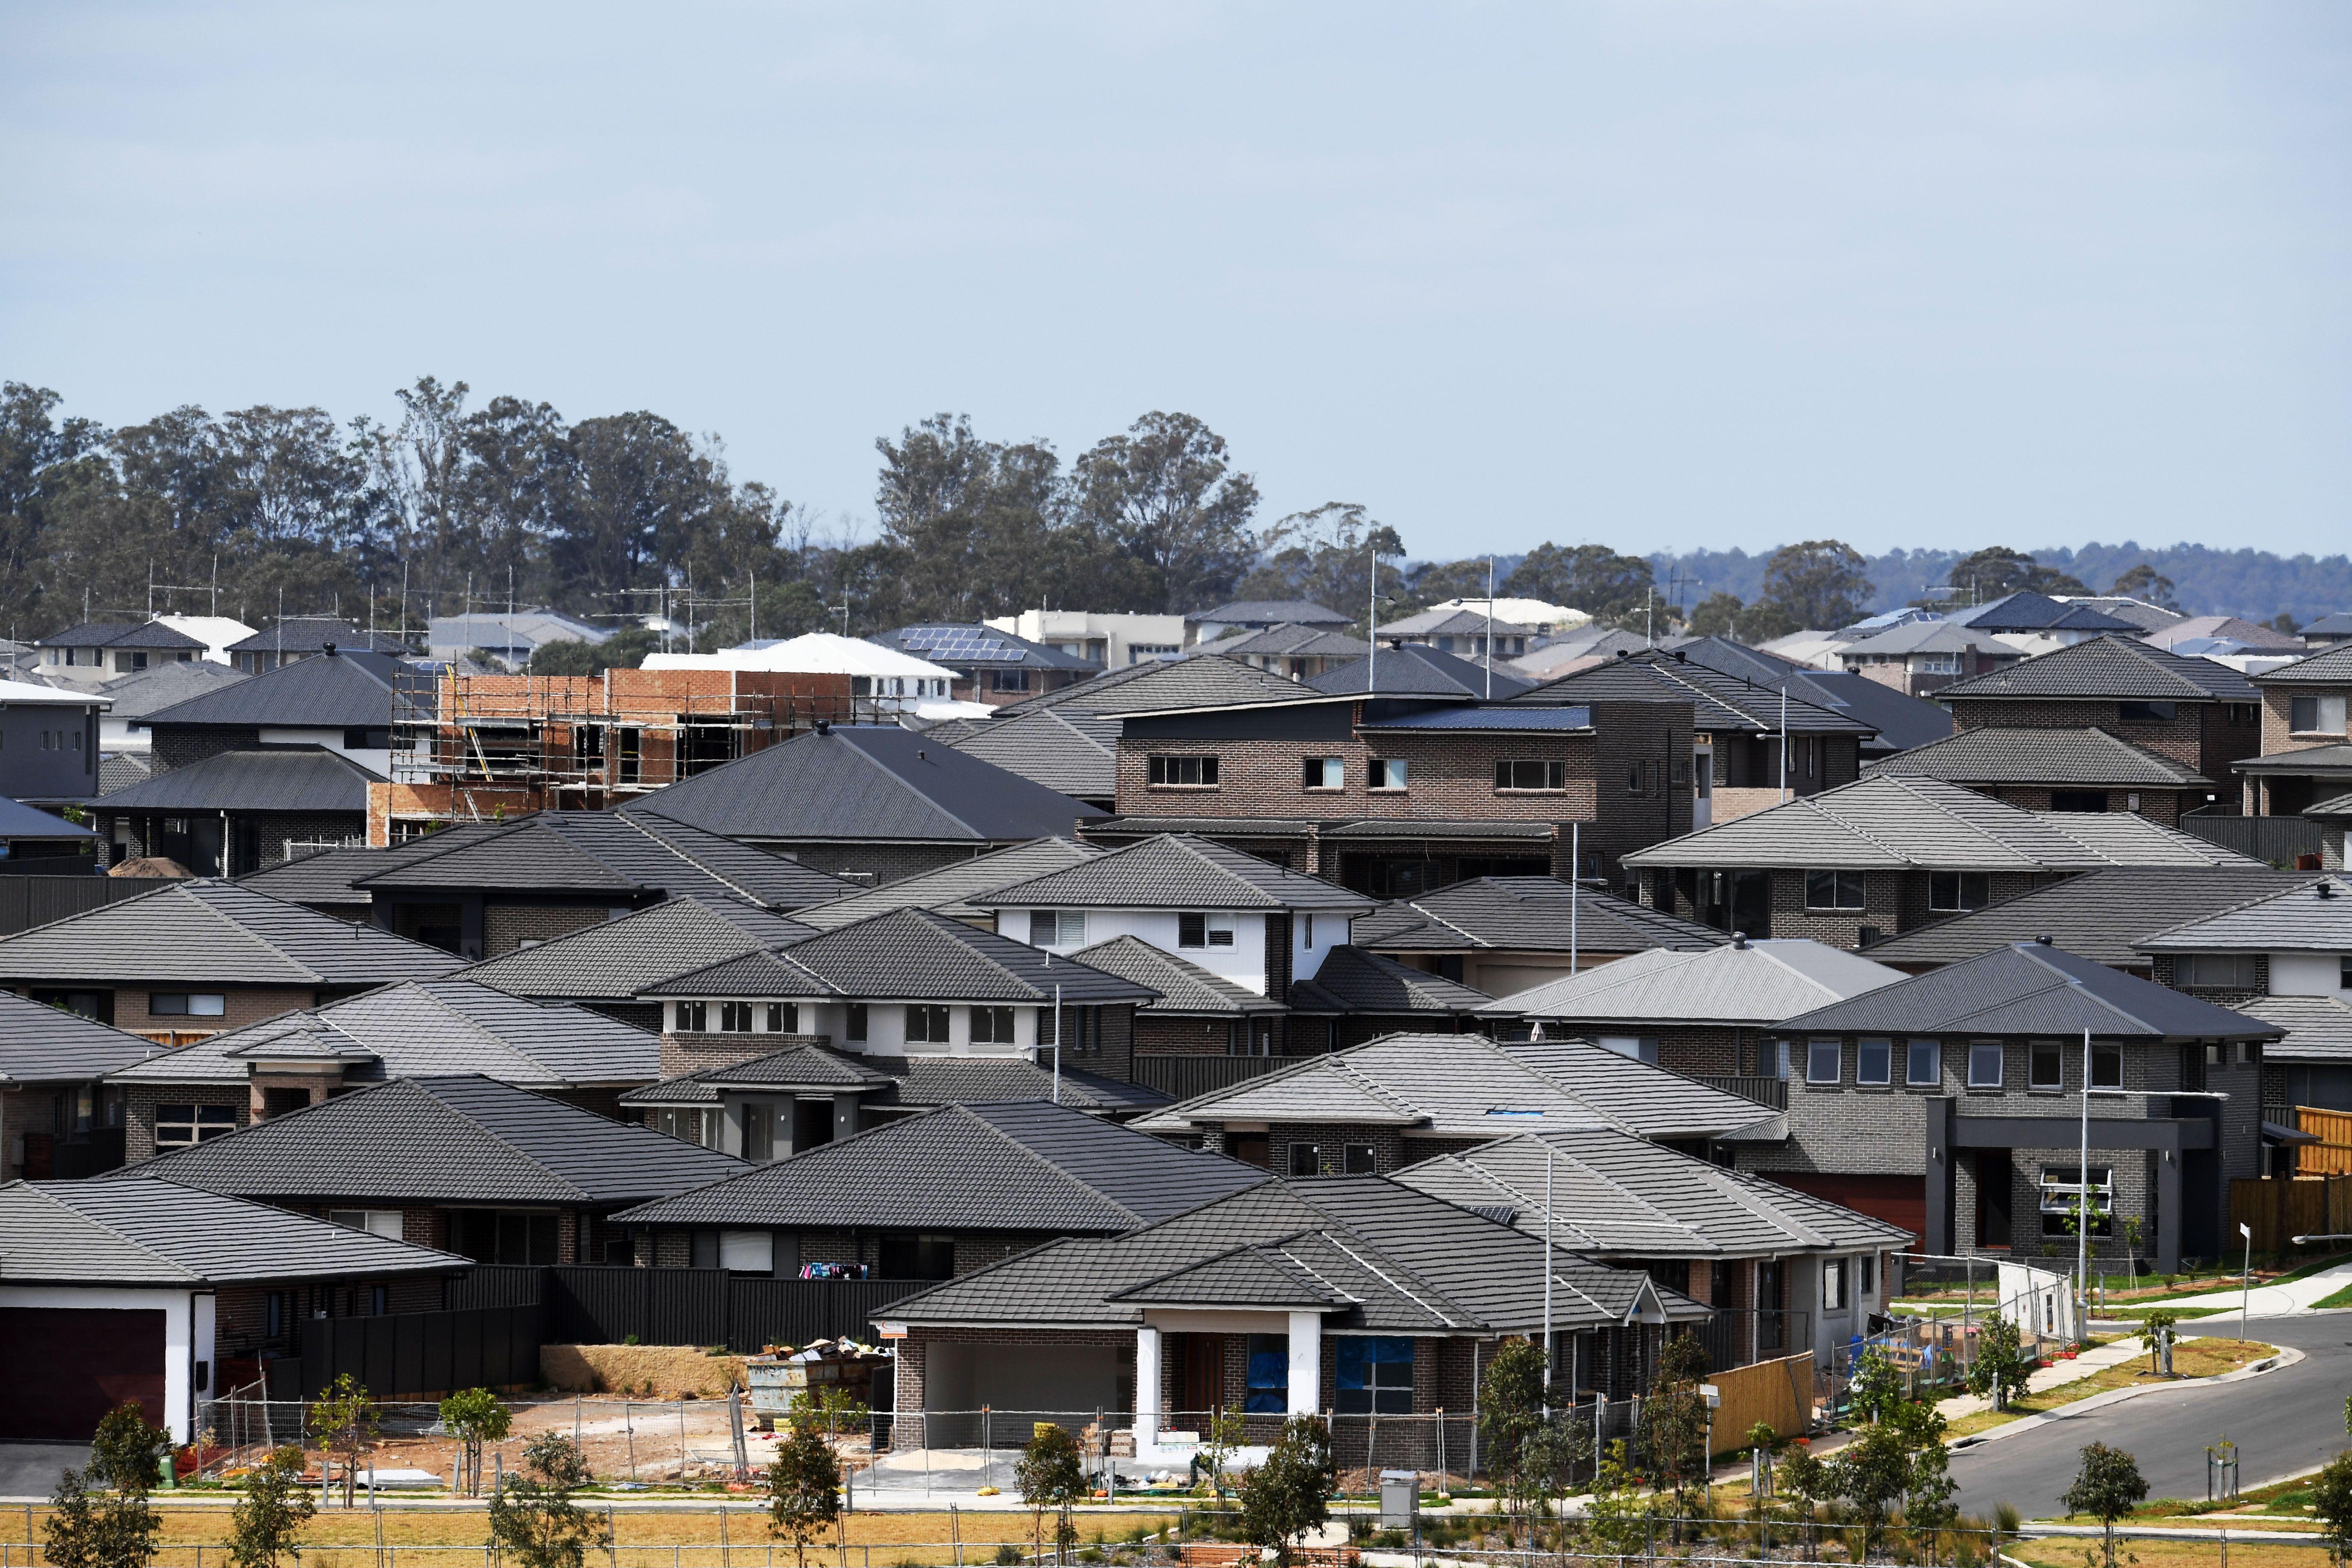 ScoMoBank joins the long list of housing policy failures